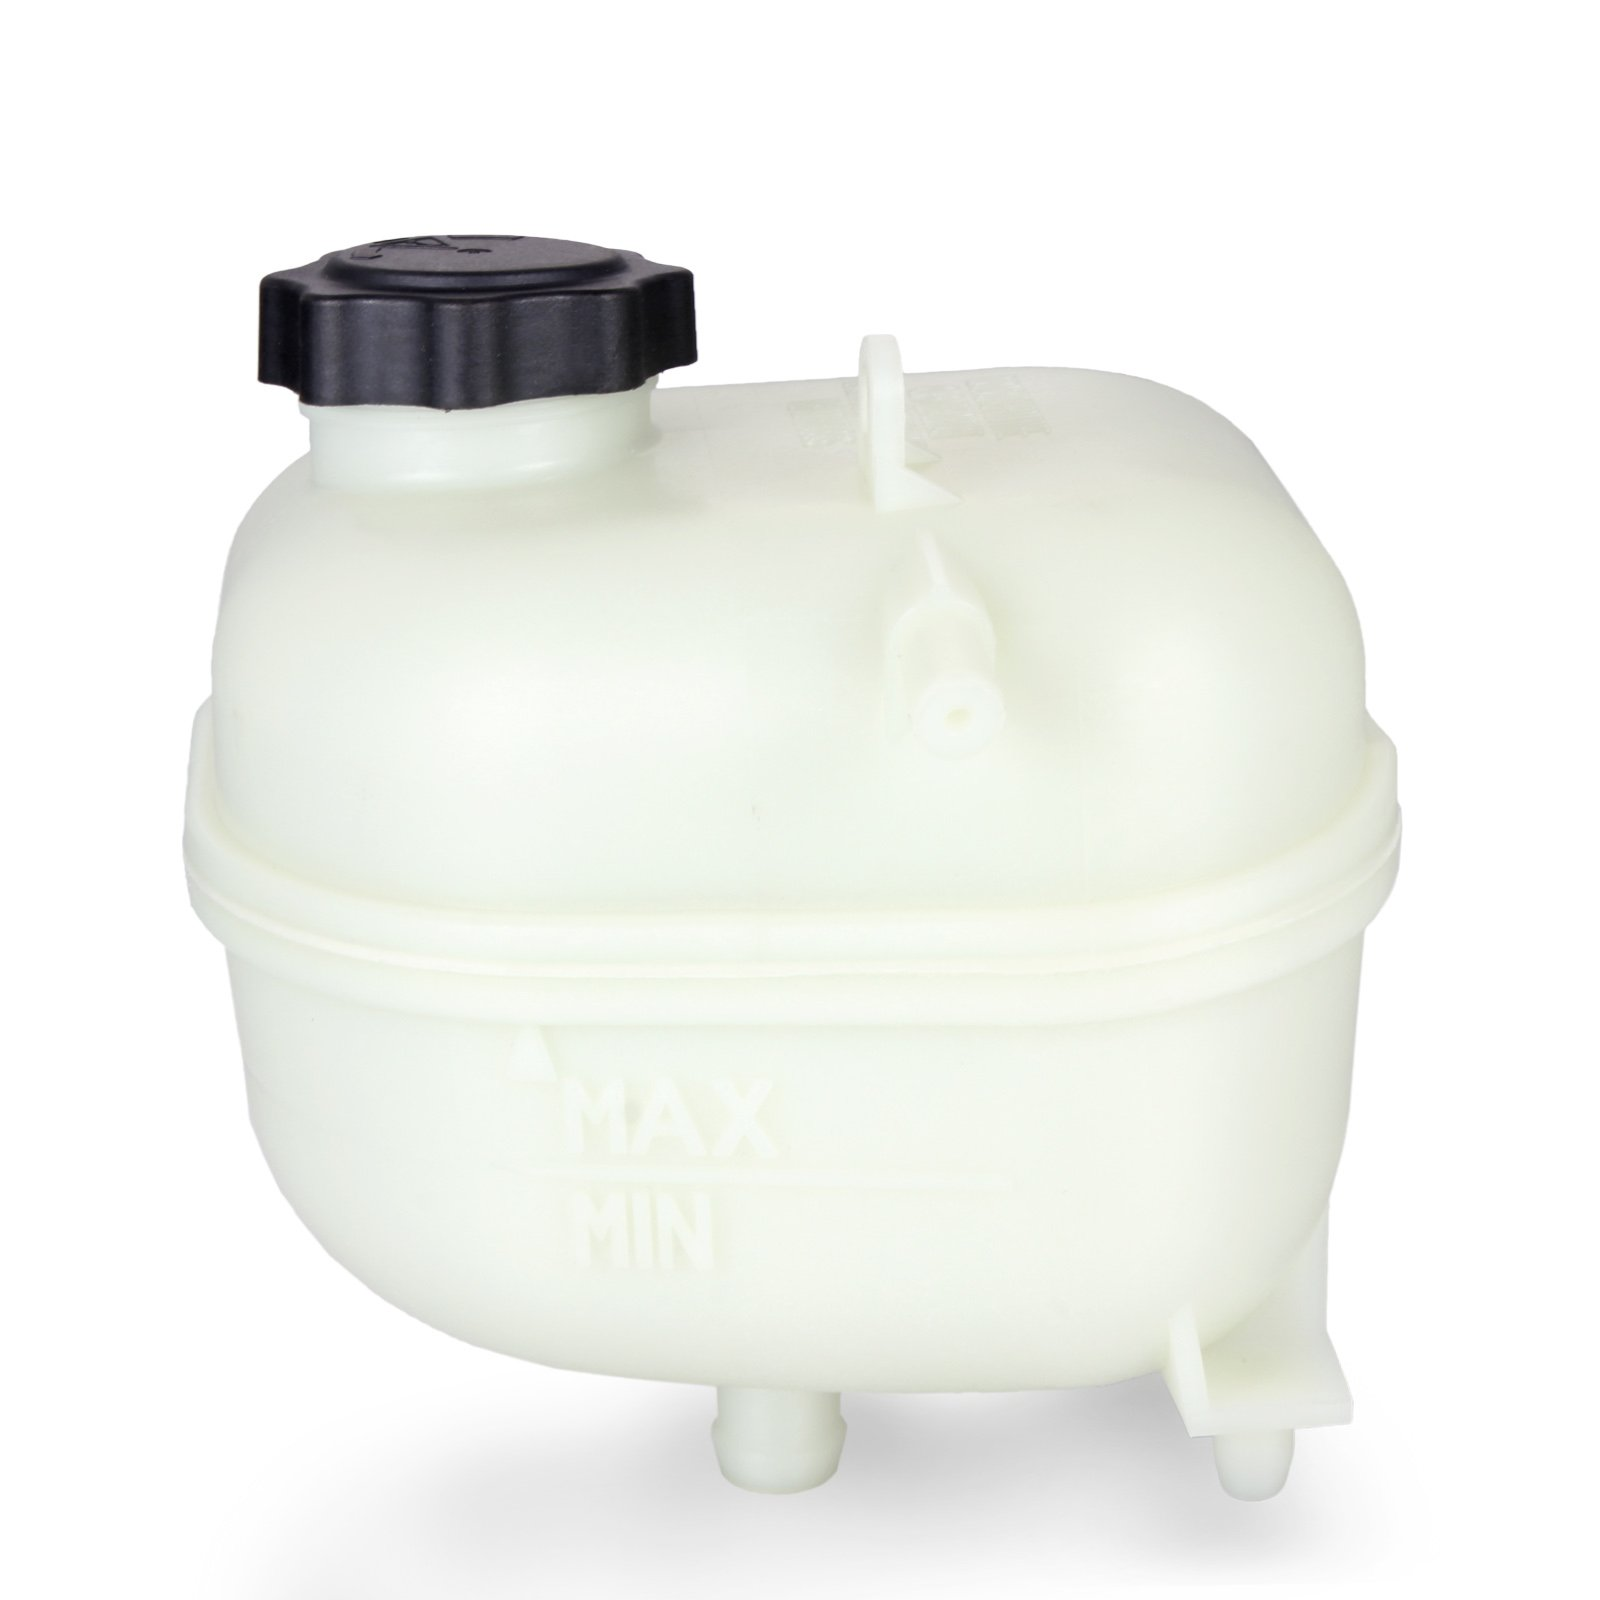 AutoHorizon Coolant Reservoir Bottle Tank With Cap B7591 For Mini Cooper 2002-2008 17137529273